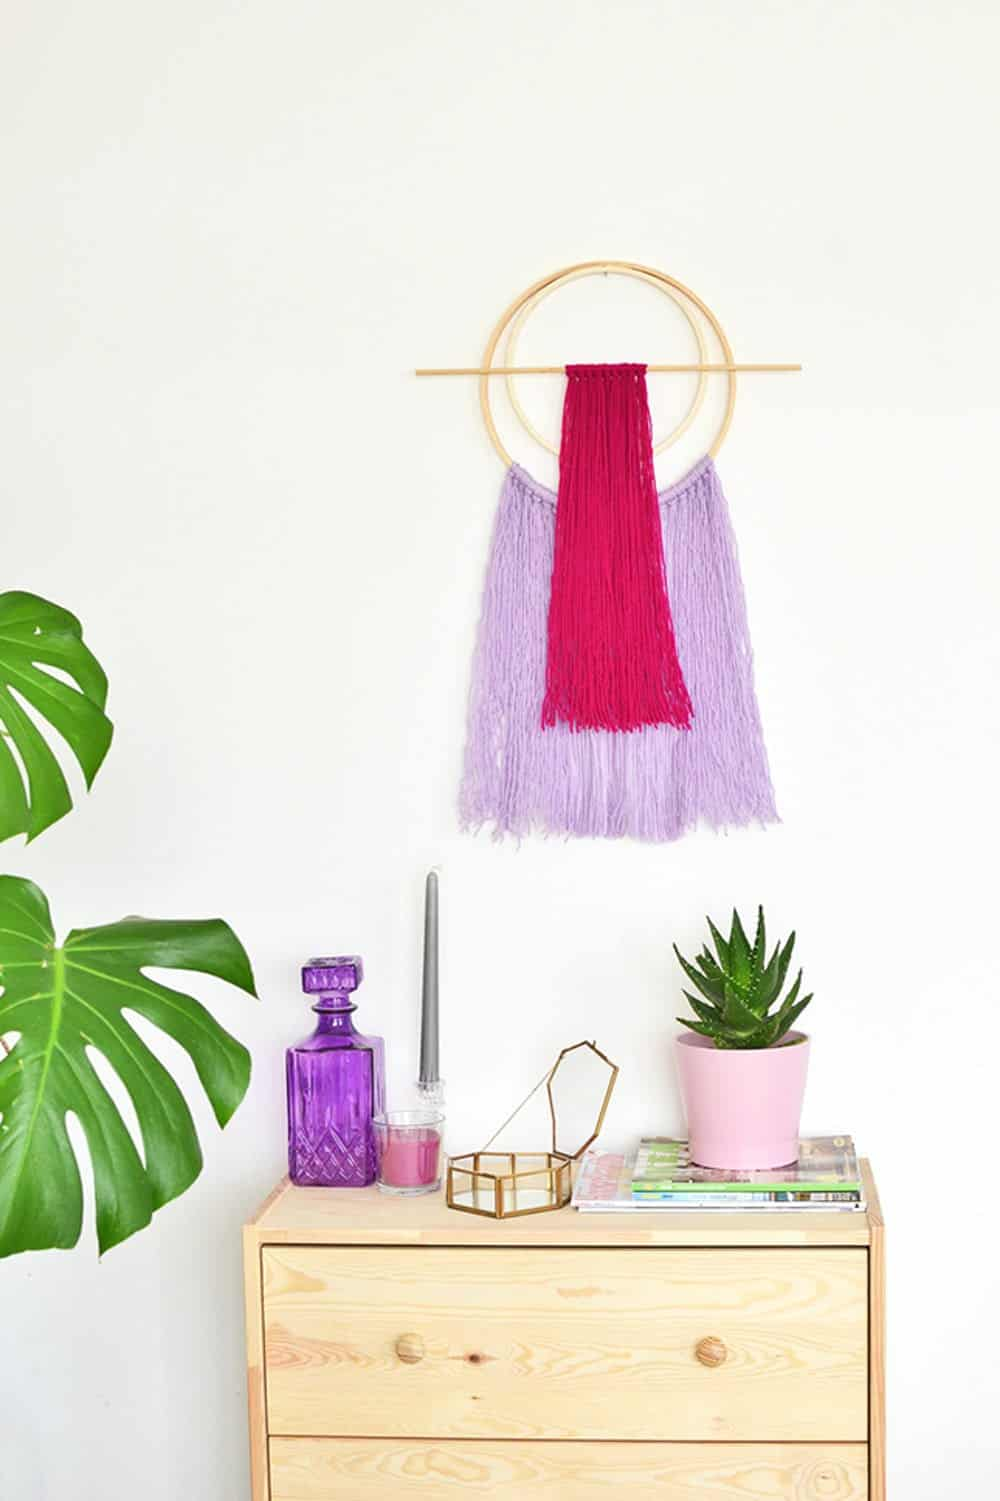 Diy hoop yarn wall hanging